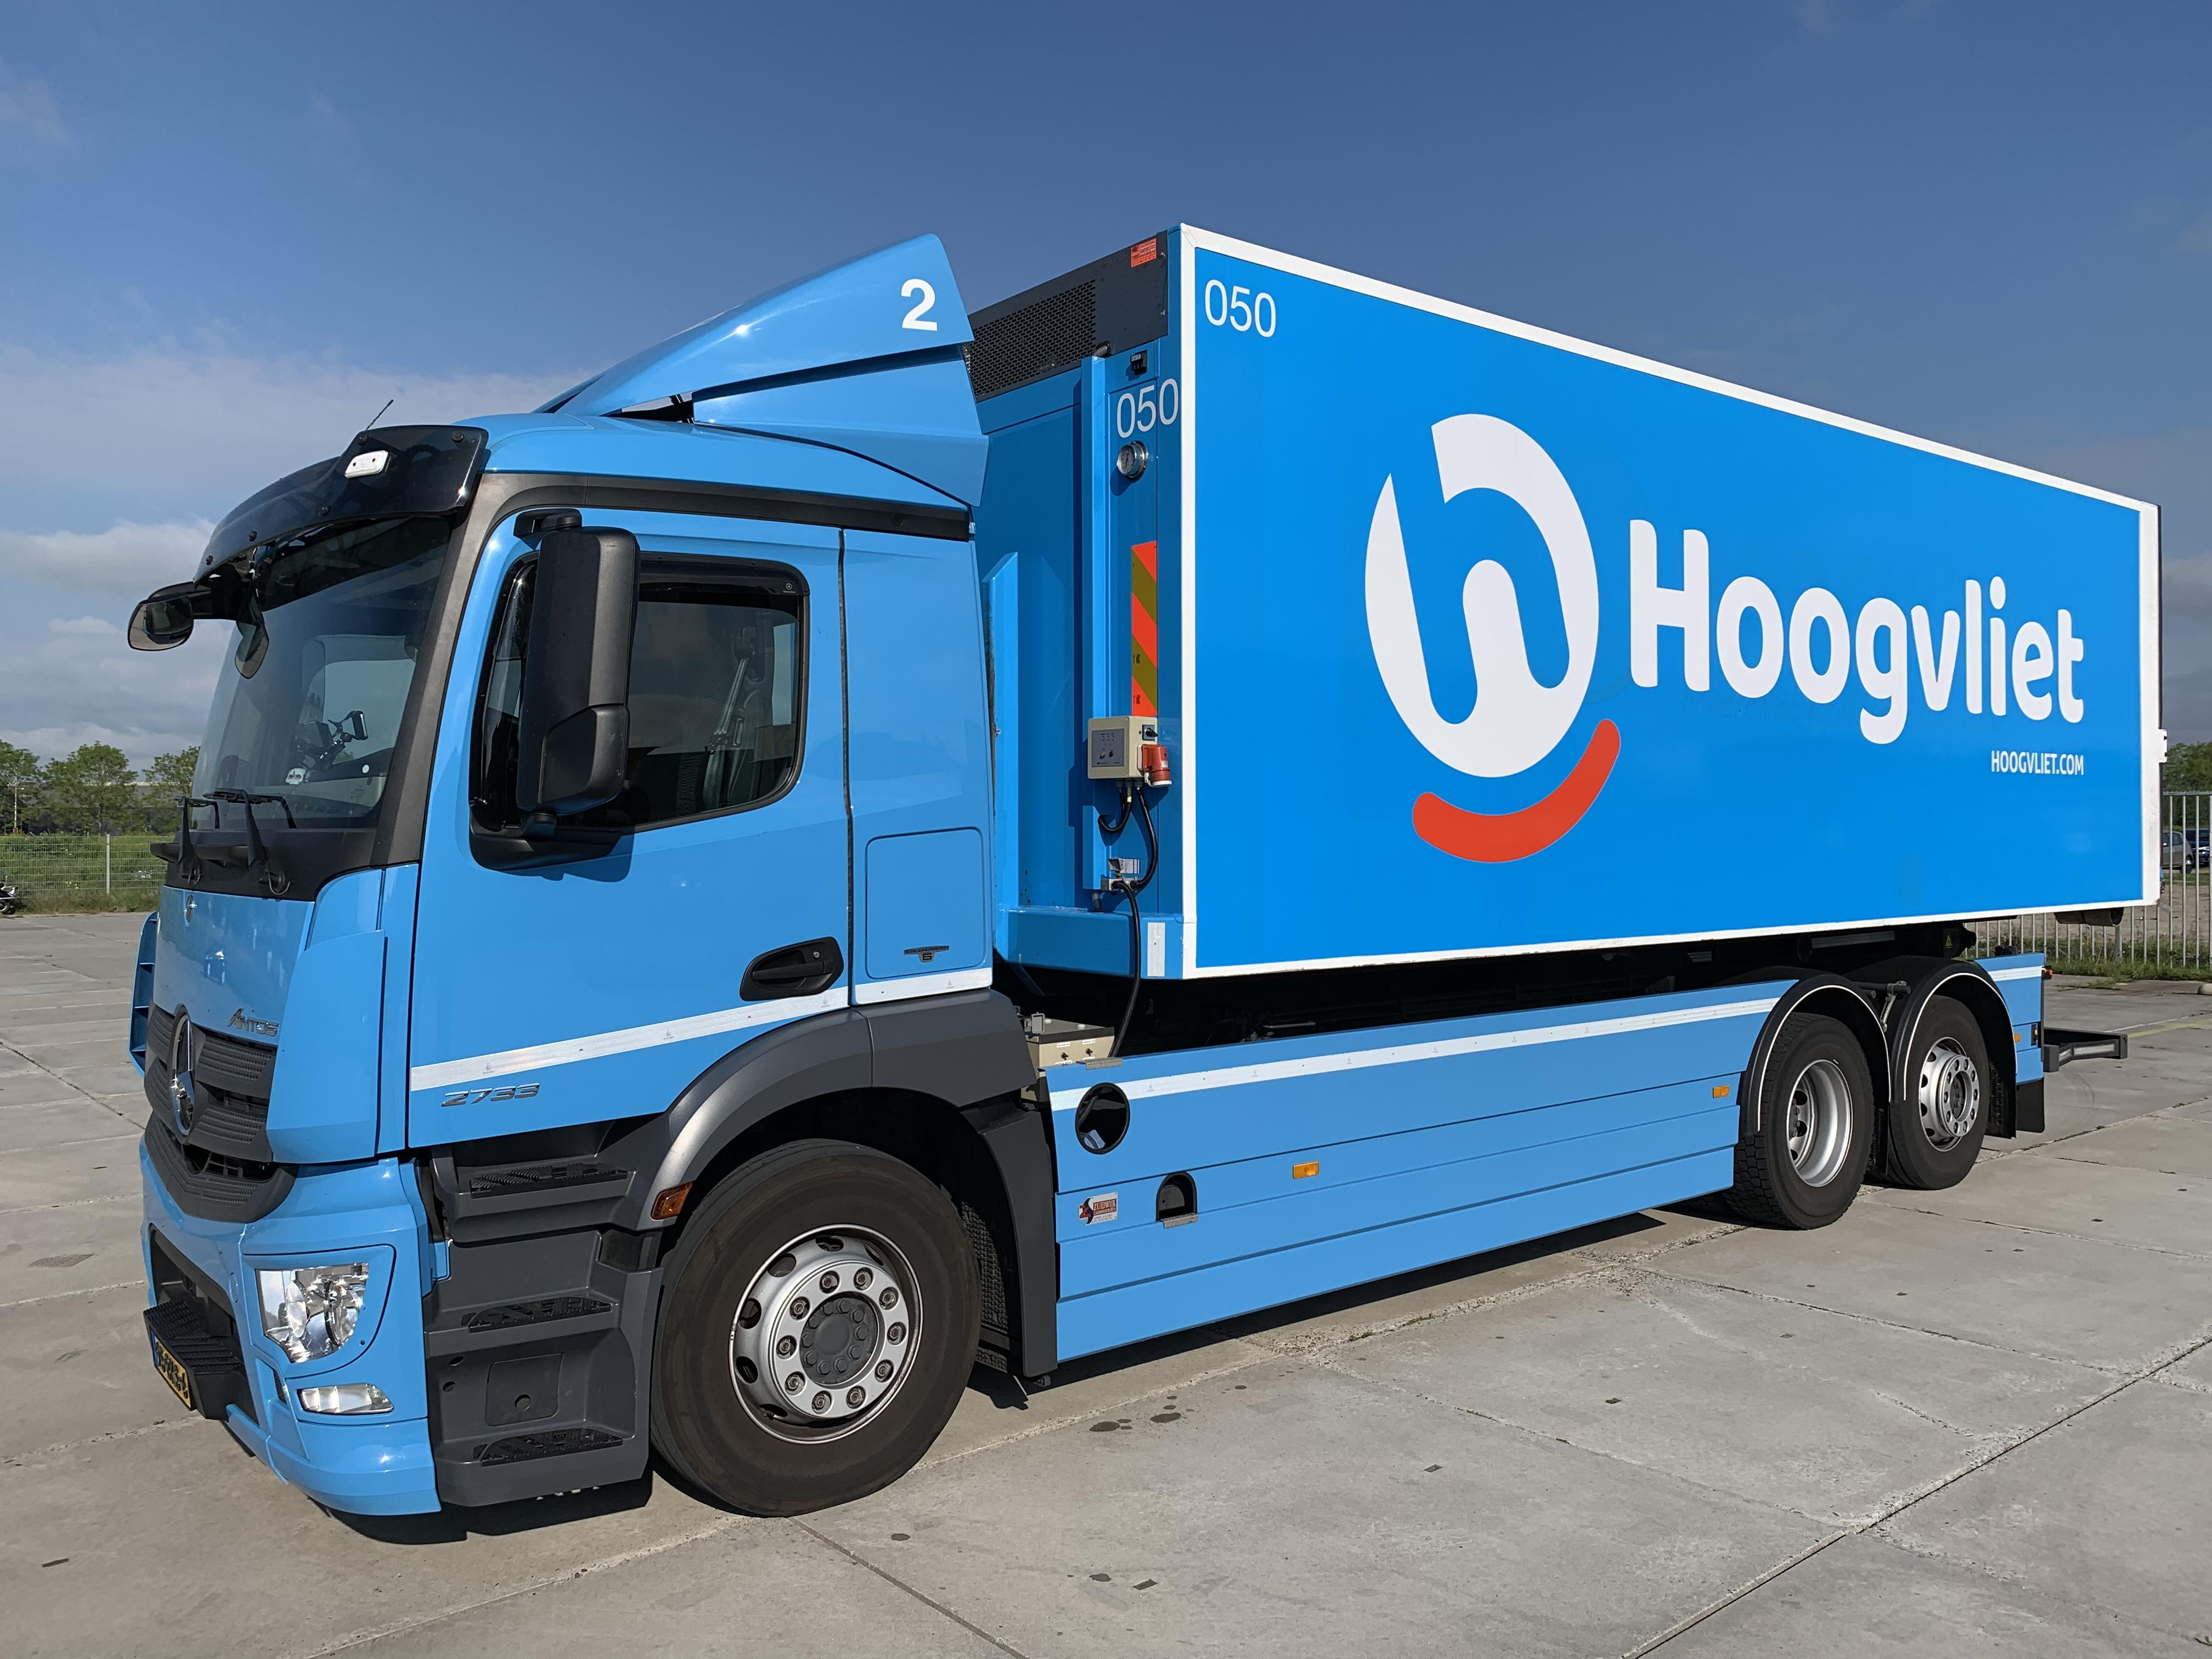 Hoogvliet zet met Trimble's fleet management oplossingen flinke stappen in digitalisering van transport